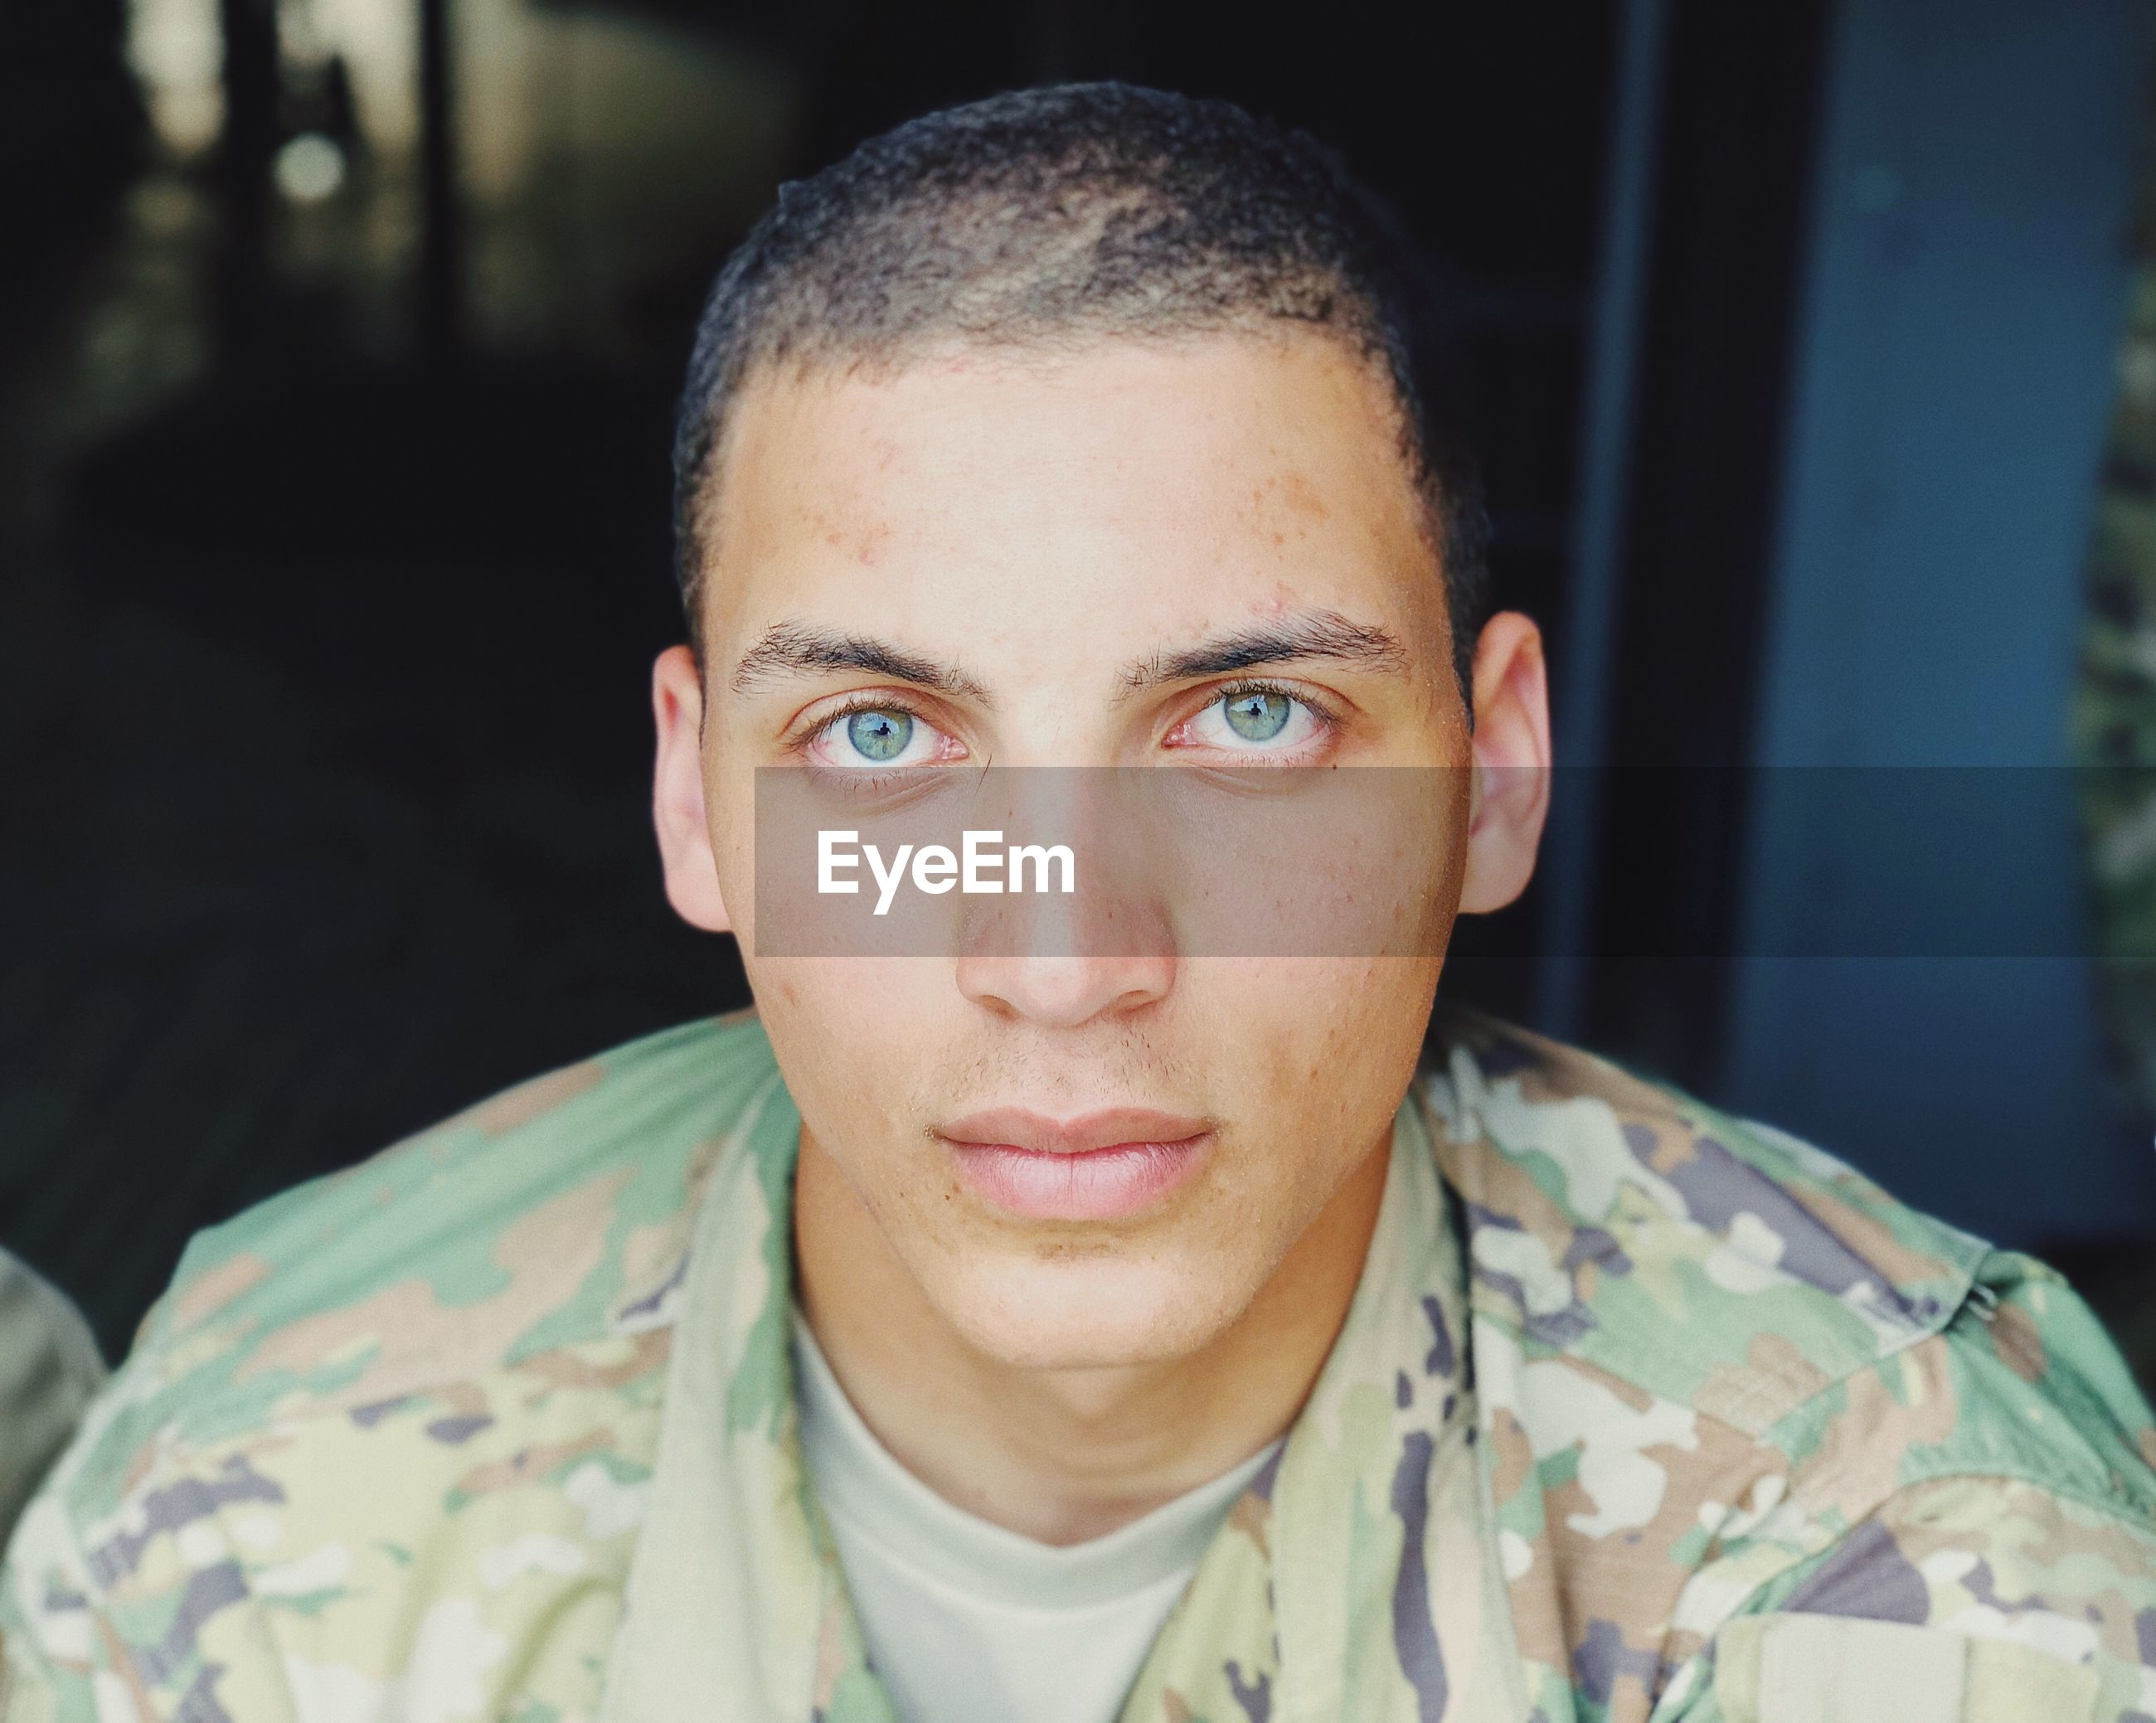 portrait, headshot, looking at camera, front view, one person, real people, young adult, focus on foreground, lifestyles, young men, leisure activity, close-up, casual clothing, indoors, confidence, serious, men, mid adult, human face, eyebrow